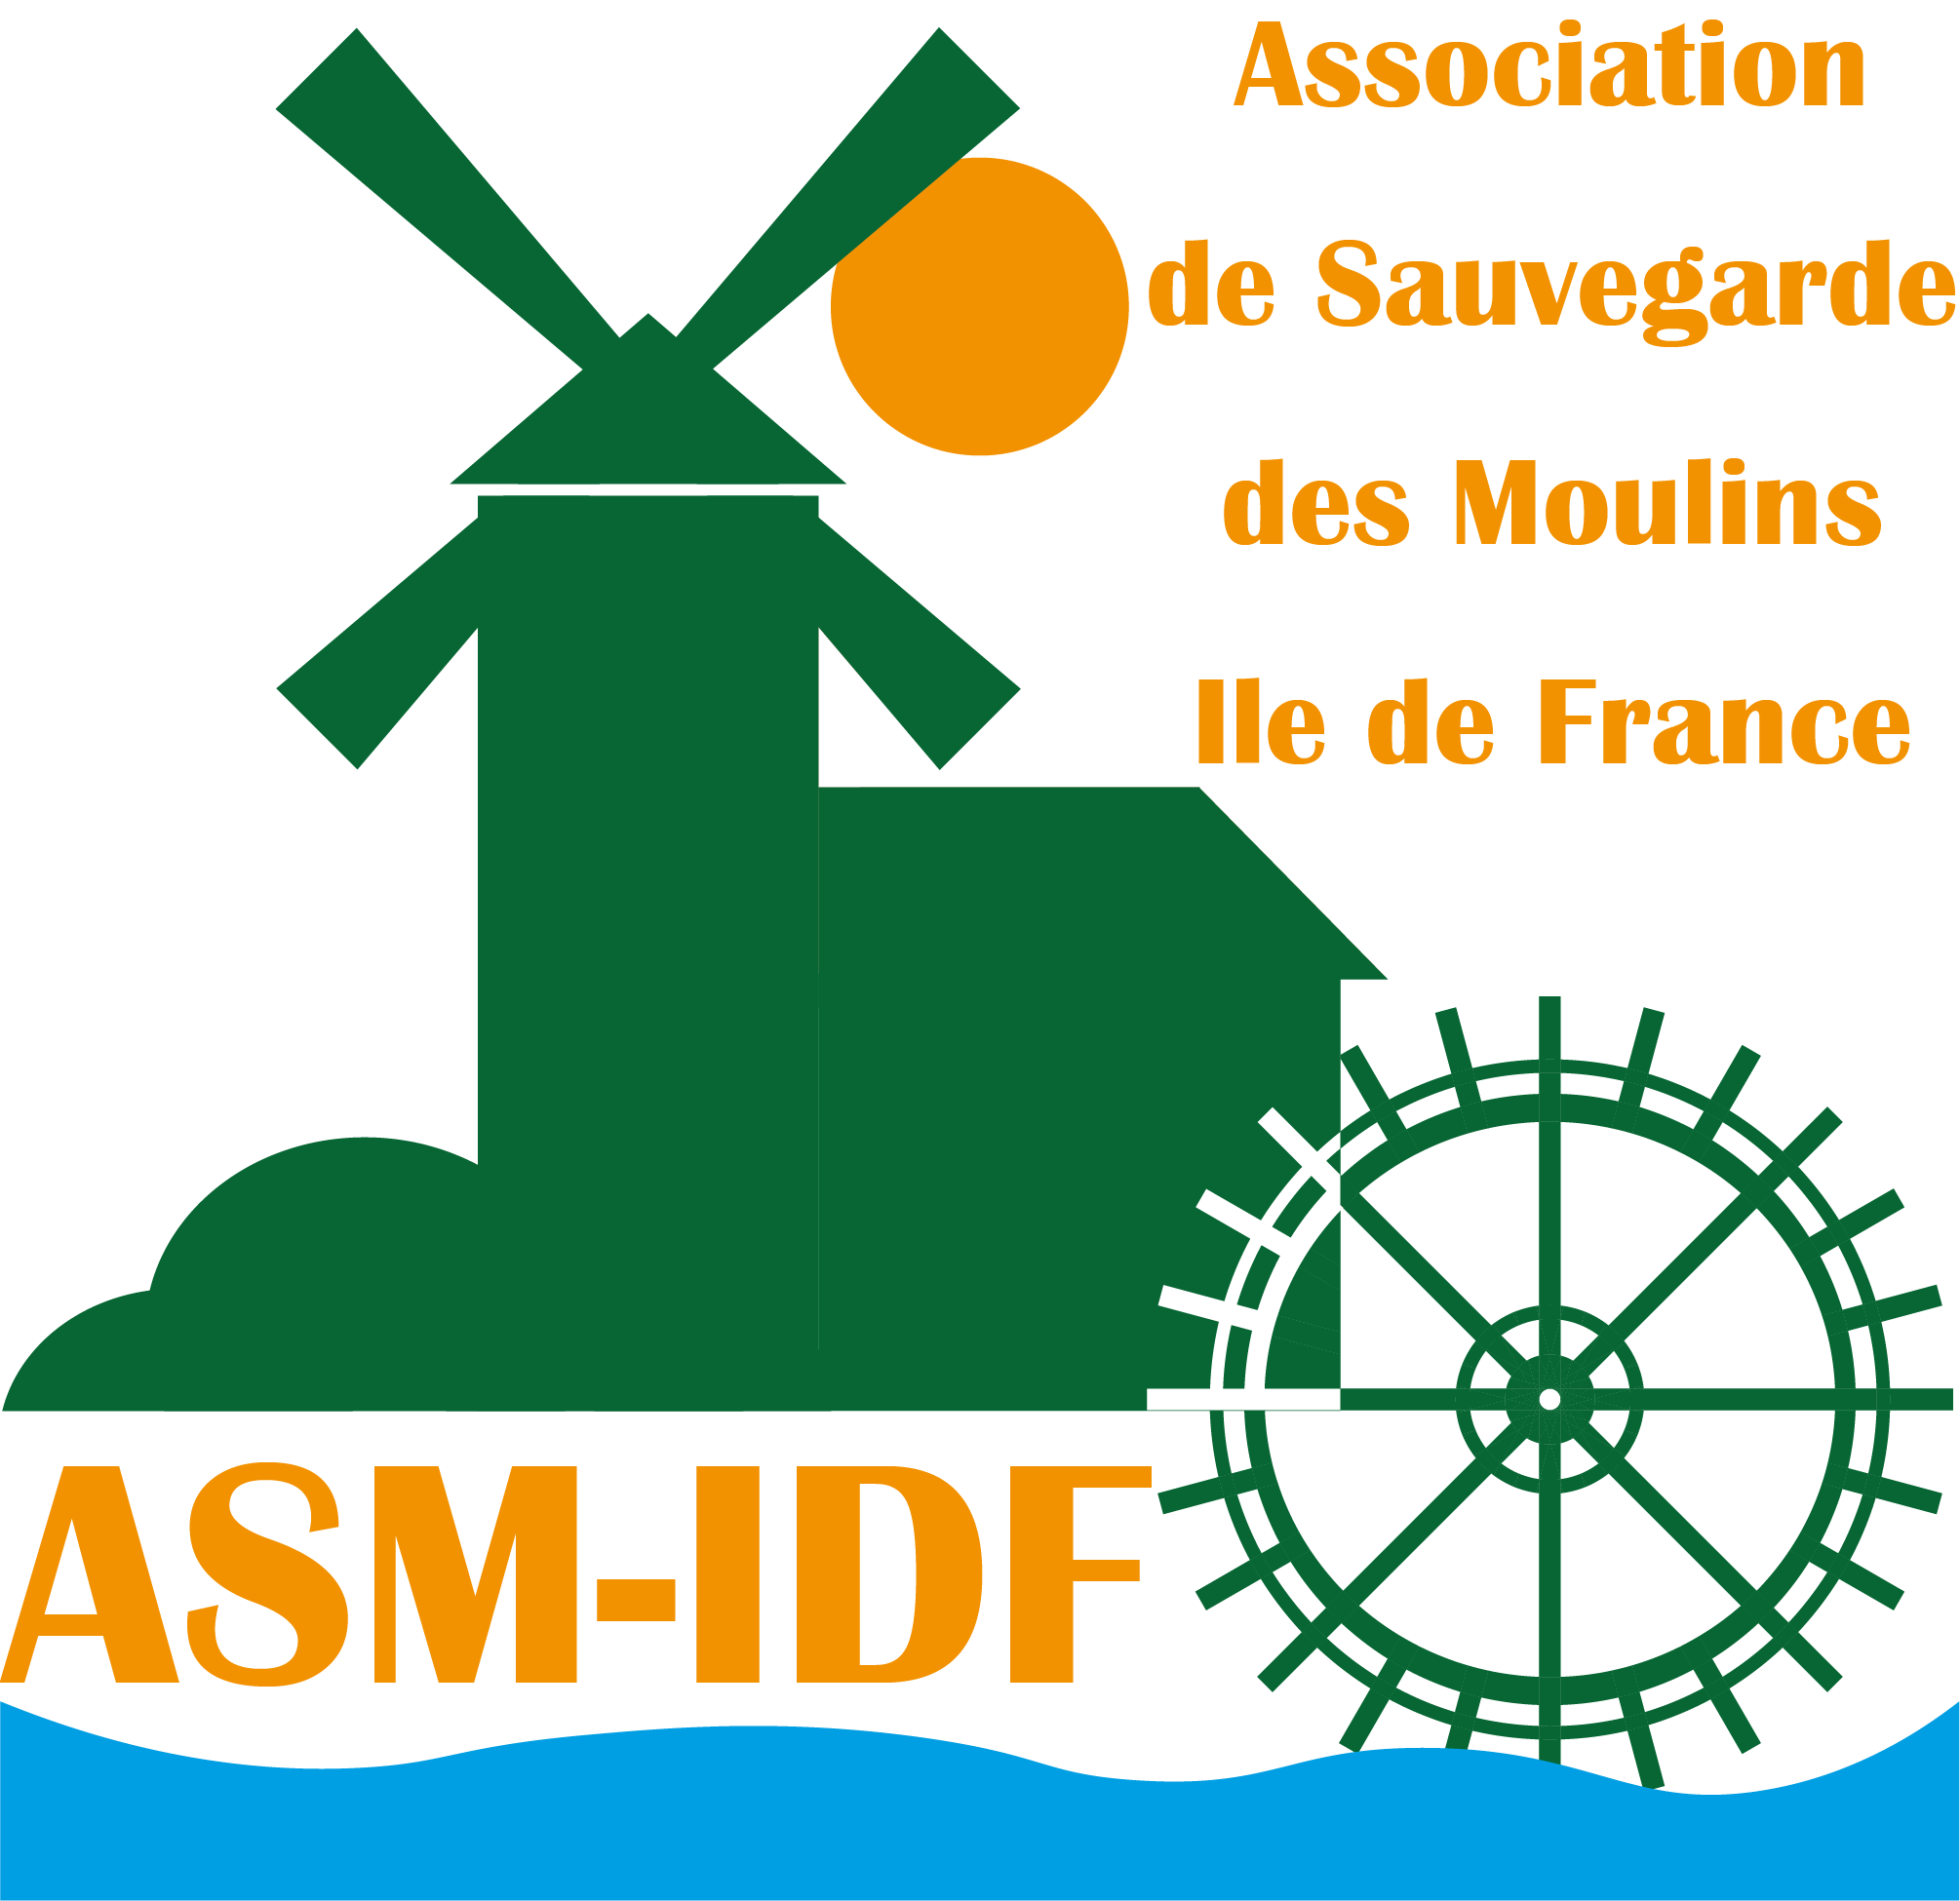 Logo Association de Sauvegarde des Moulins - Ile de France